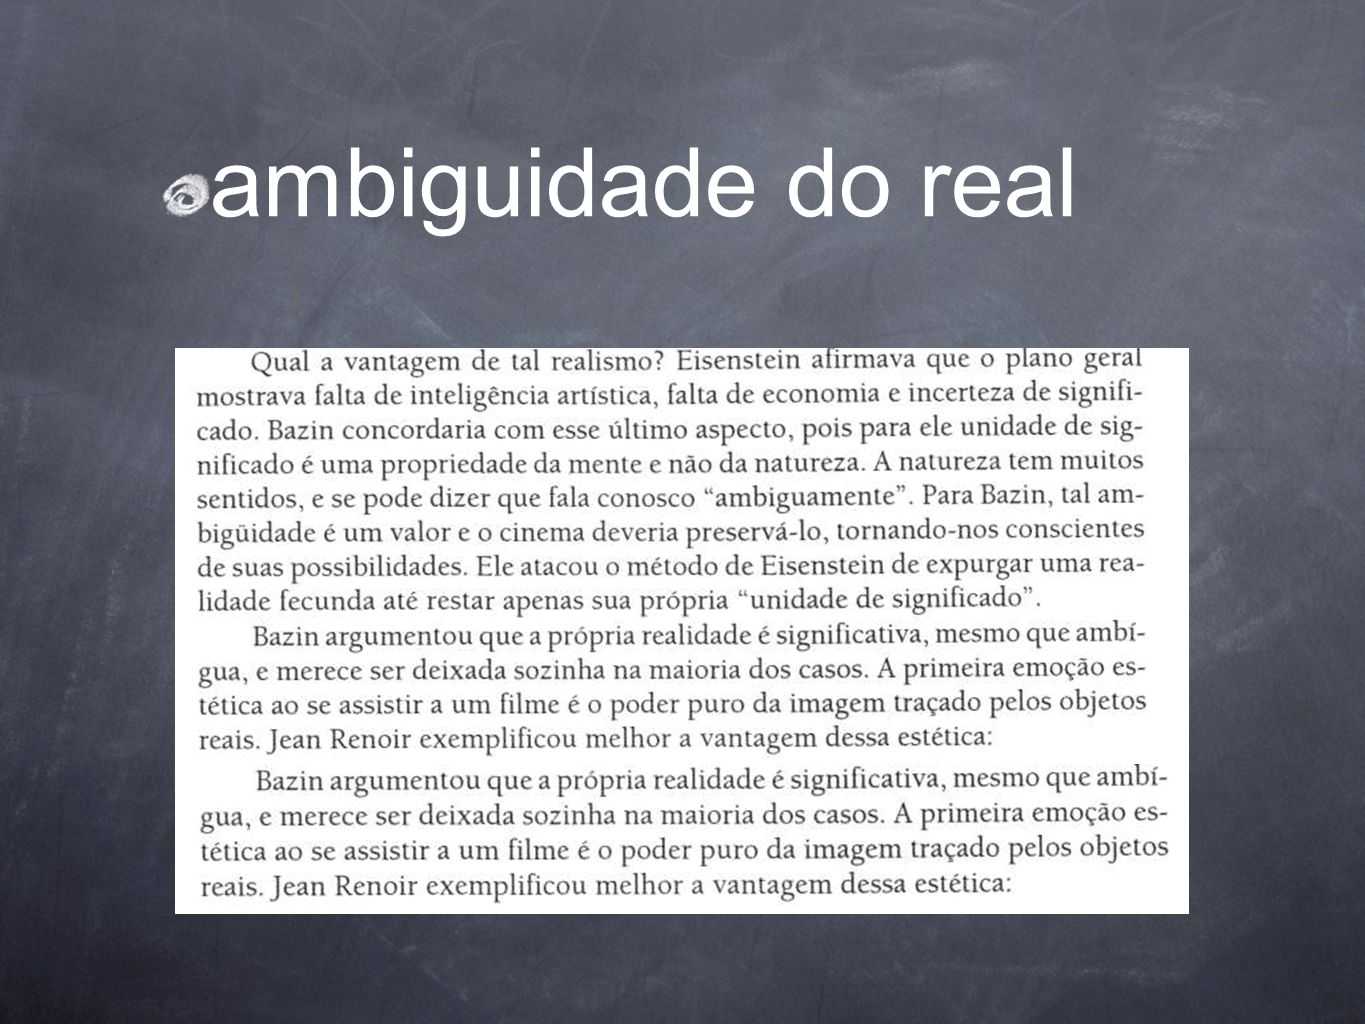 ambiguidade do real